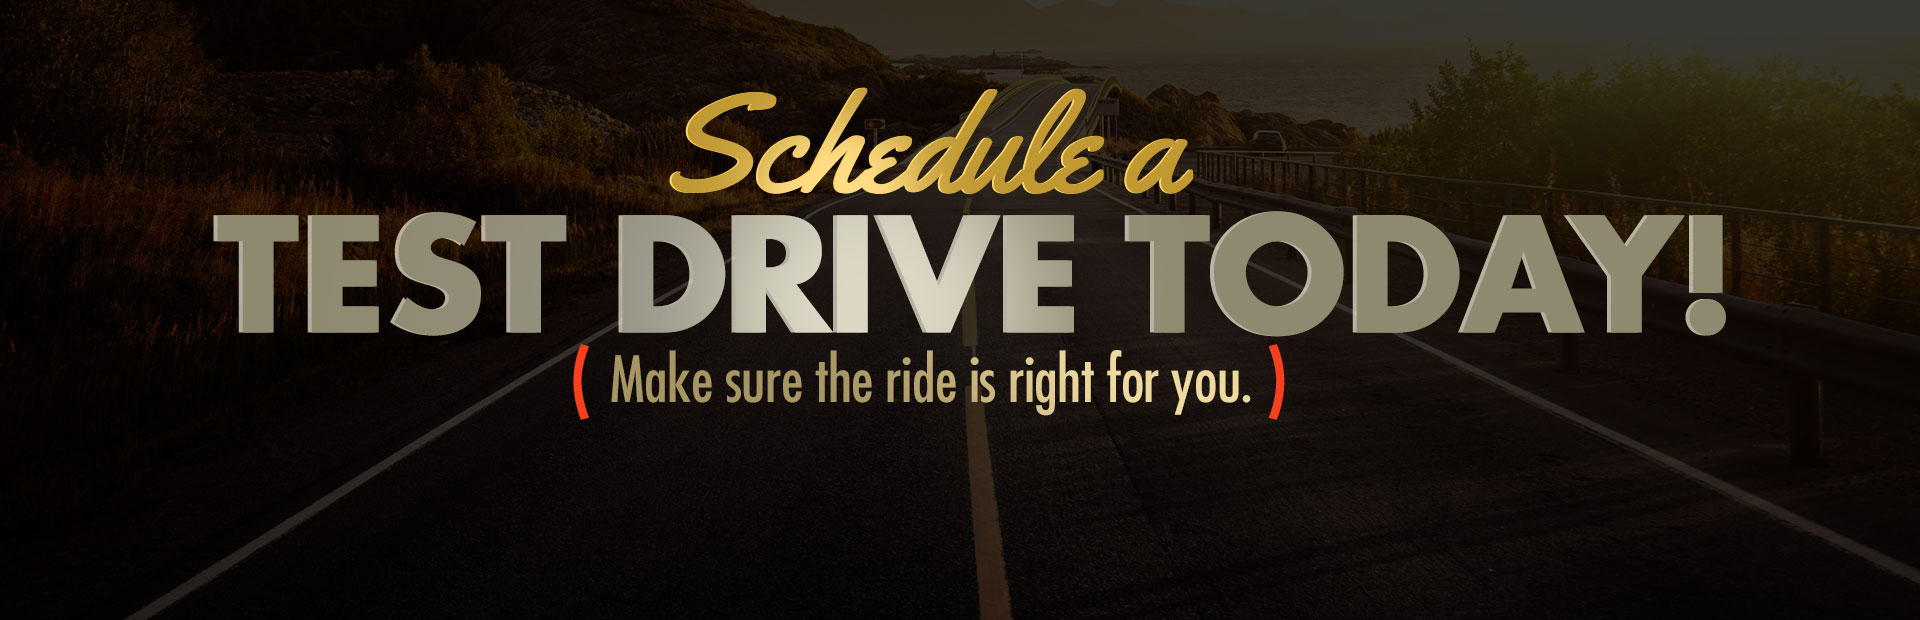 Make sure the ride is right for you. Schedule a test drive today!